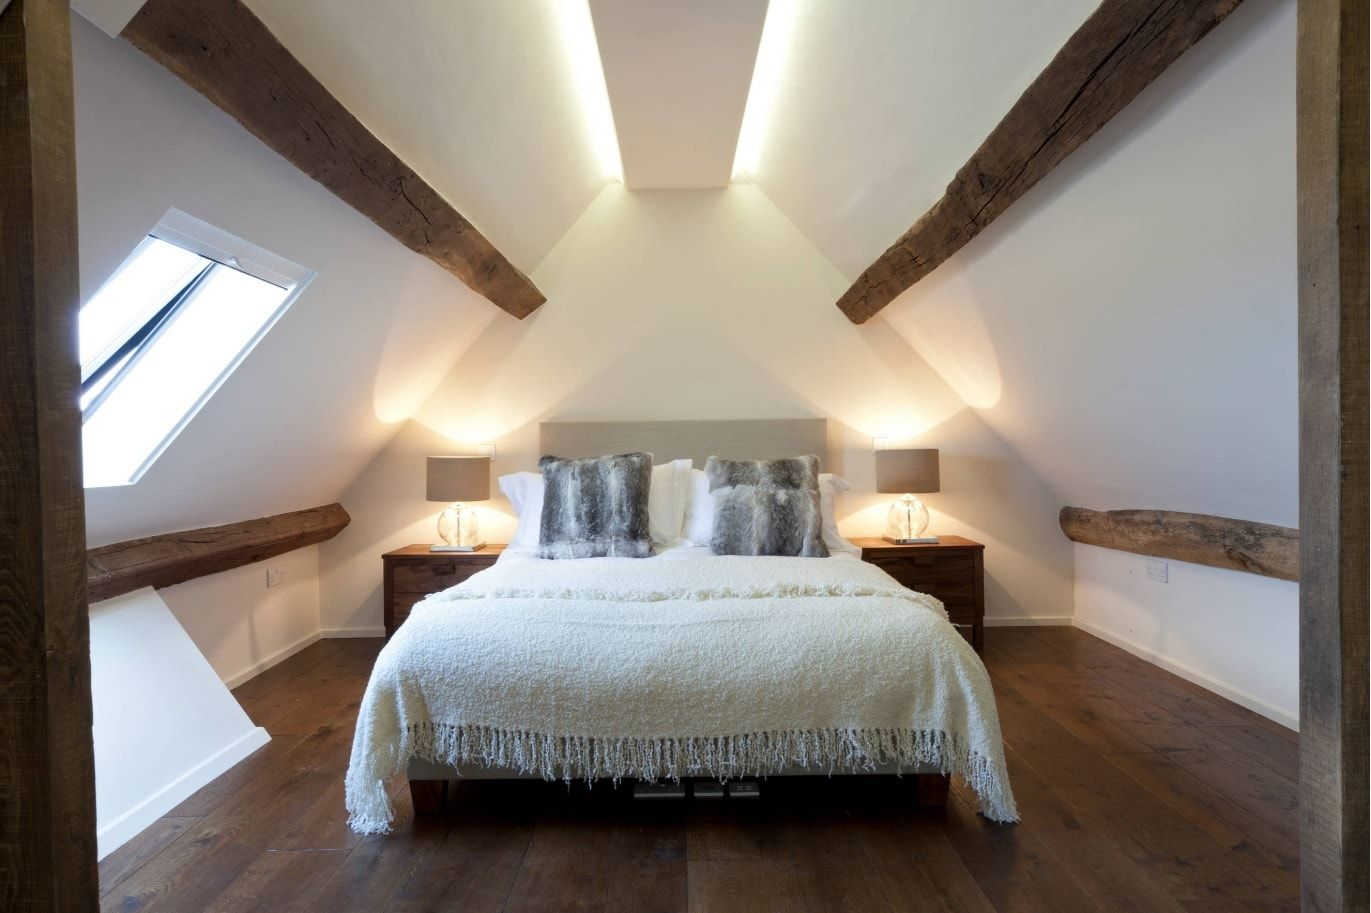 Organizing Comfortable and Functional Attic Room Advice with Photos. open ceiling beams and LED backlight